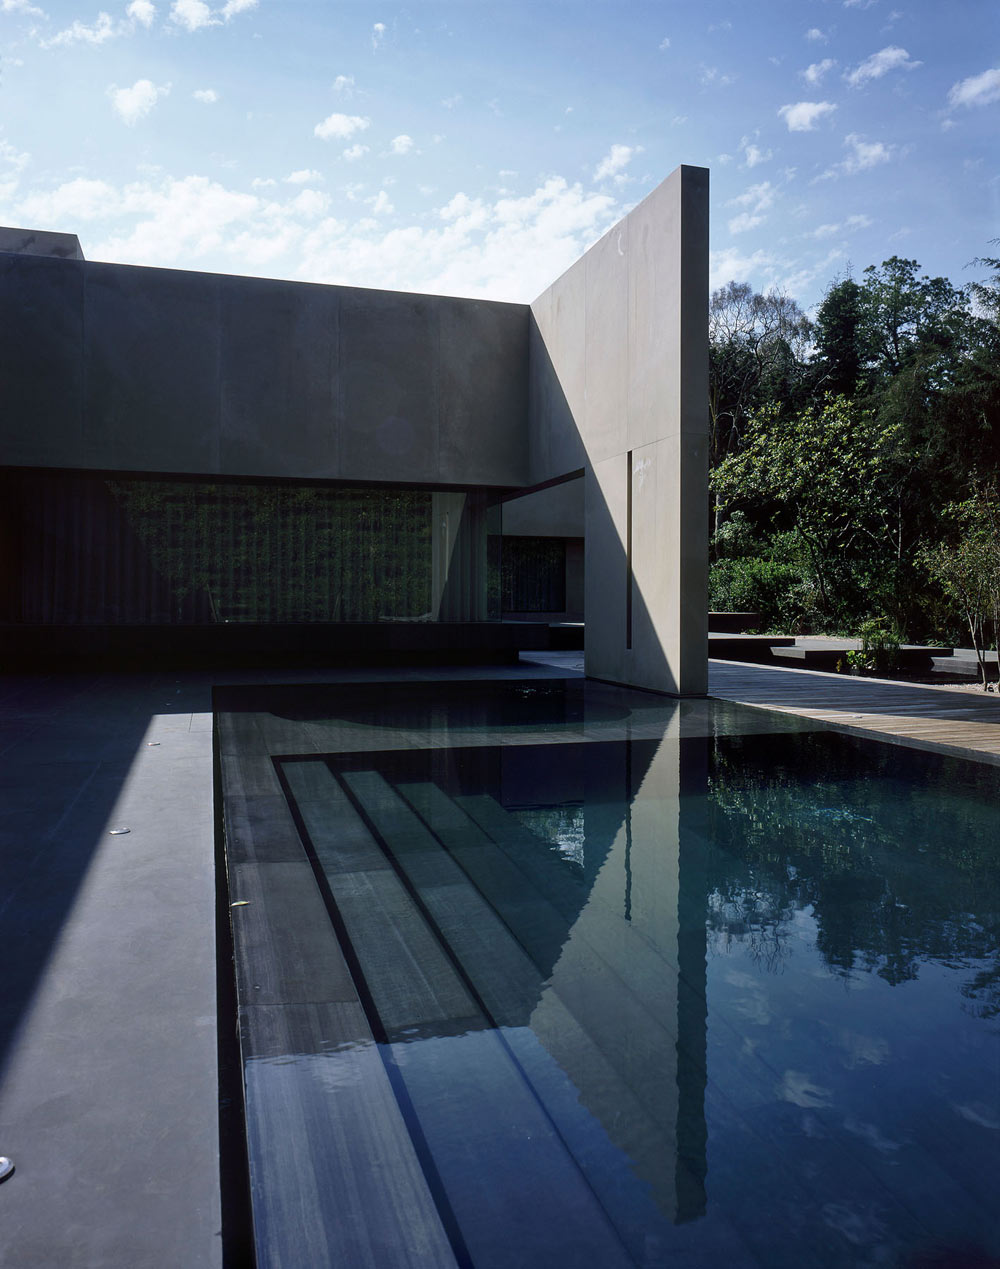 Pool, Casa Reforma by Central de Arquitectura